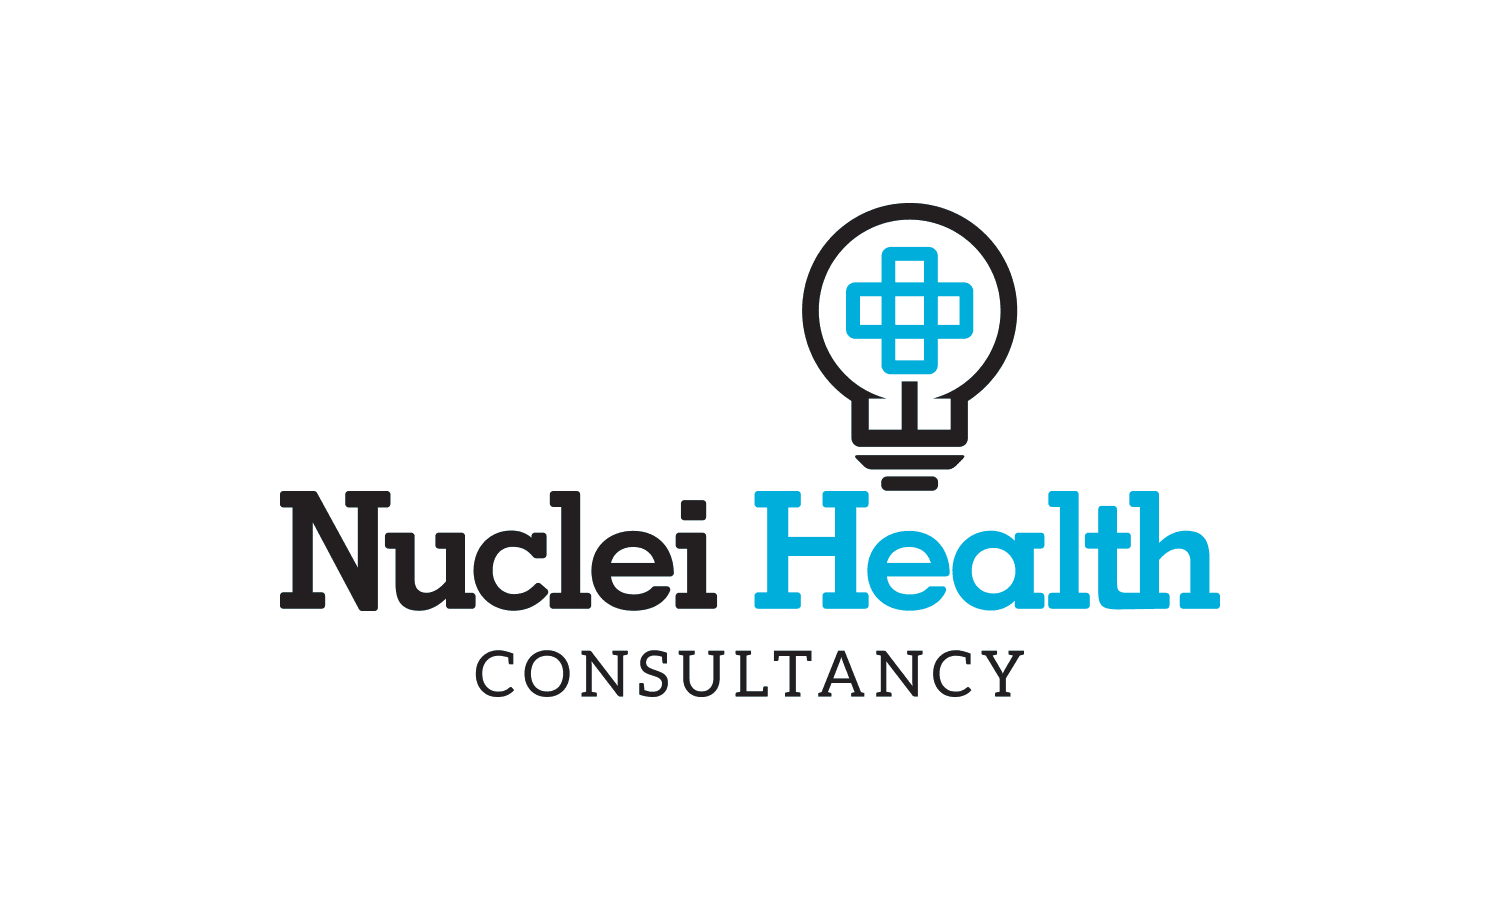 nuclei-health-logo.png